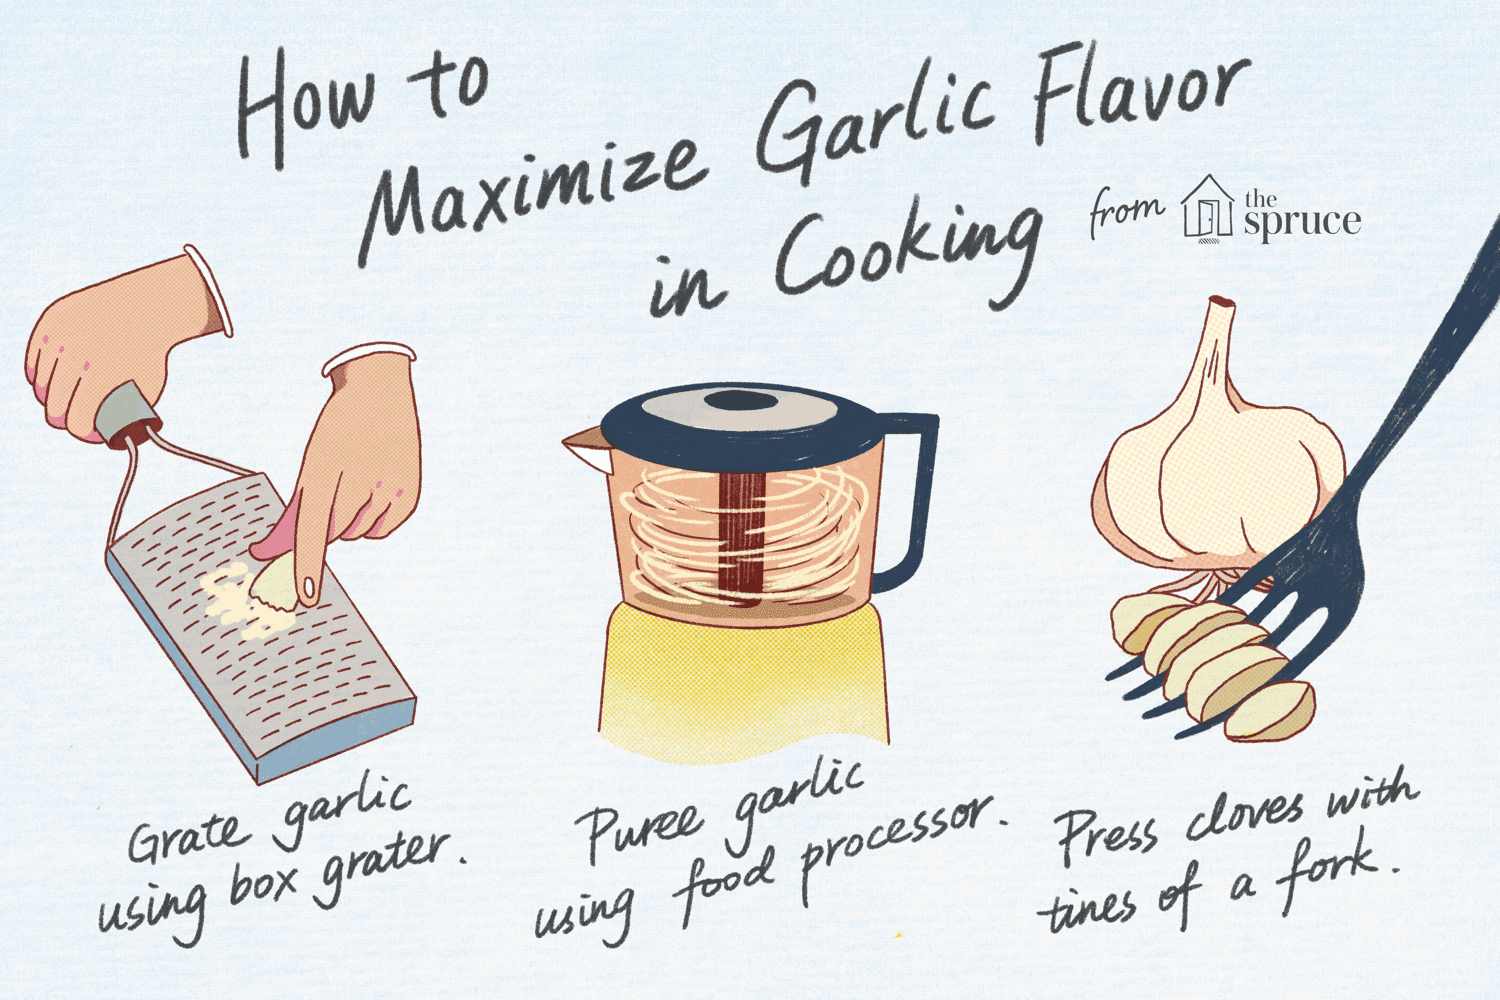 how to maximize garlic flavor in cooking